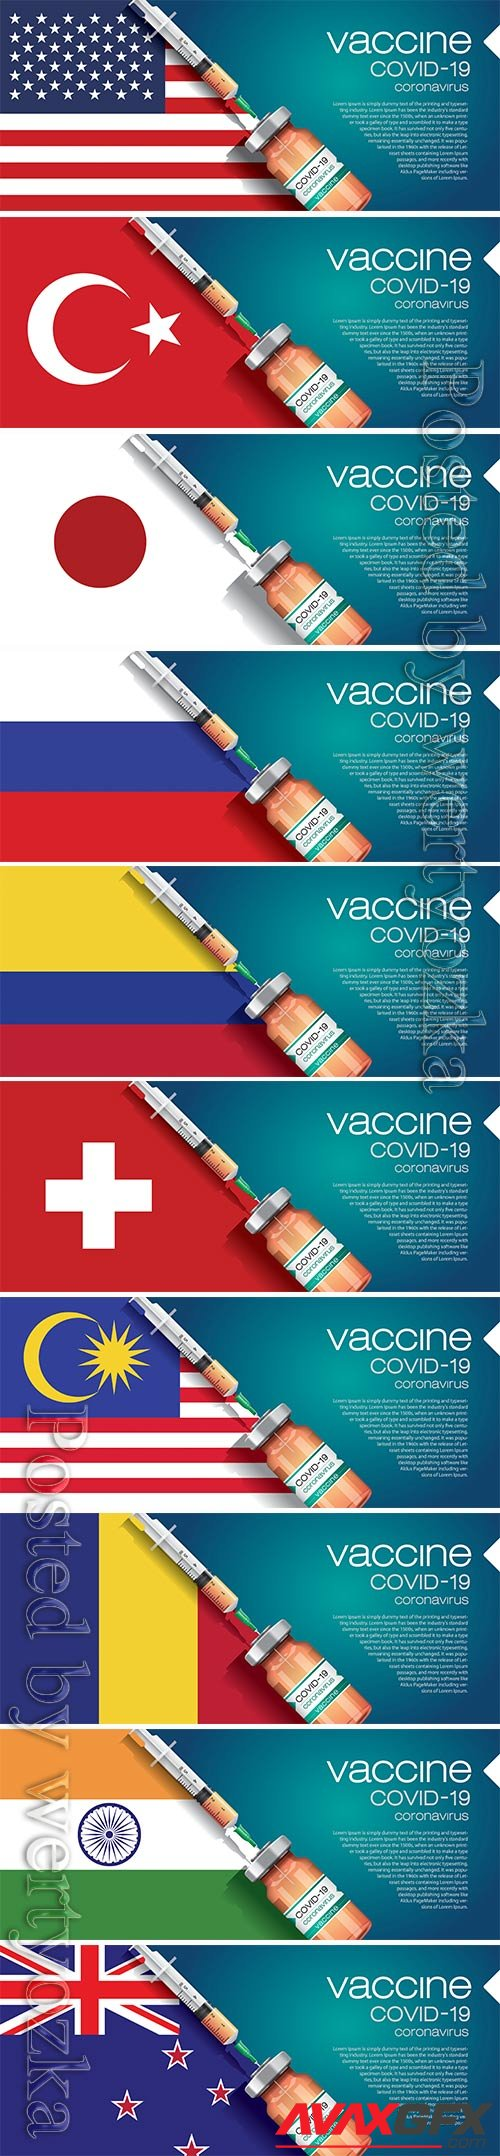 3D corona vaccine illustration and country flag concept